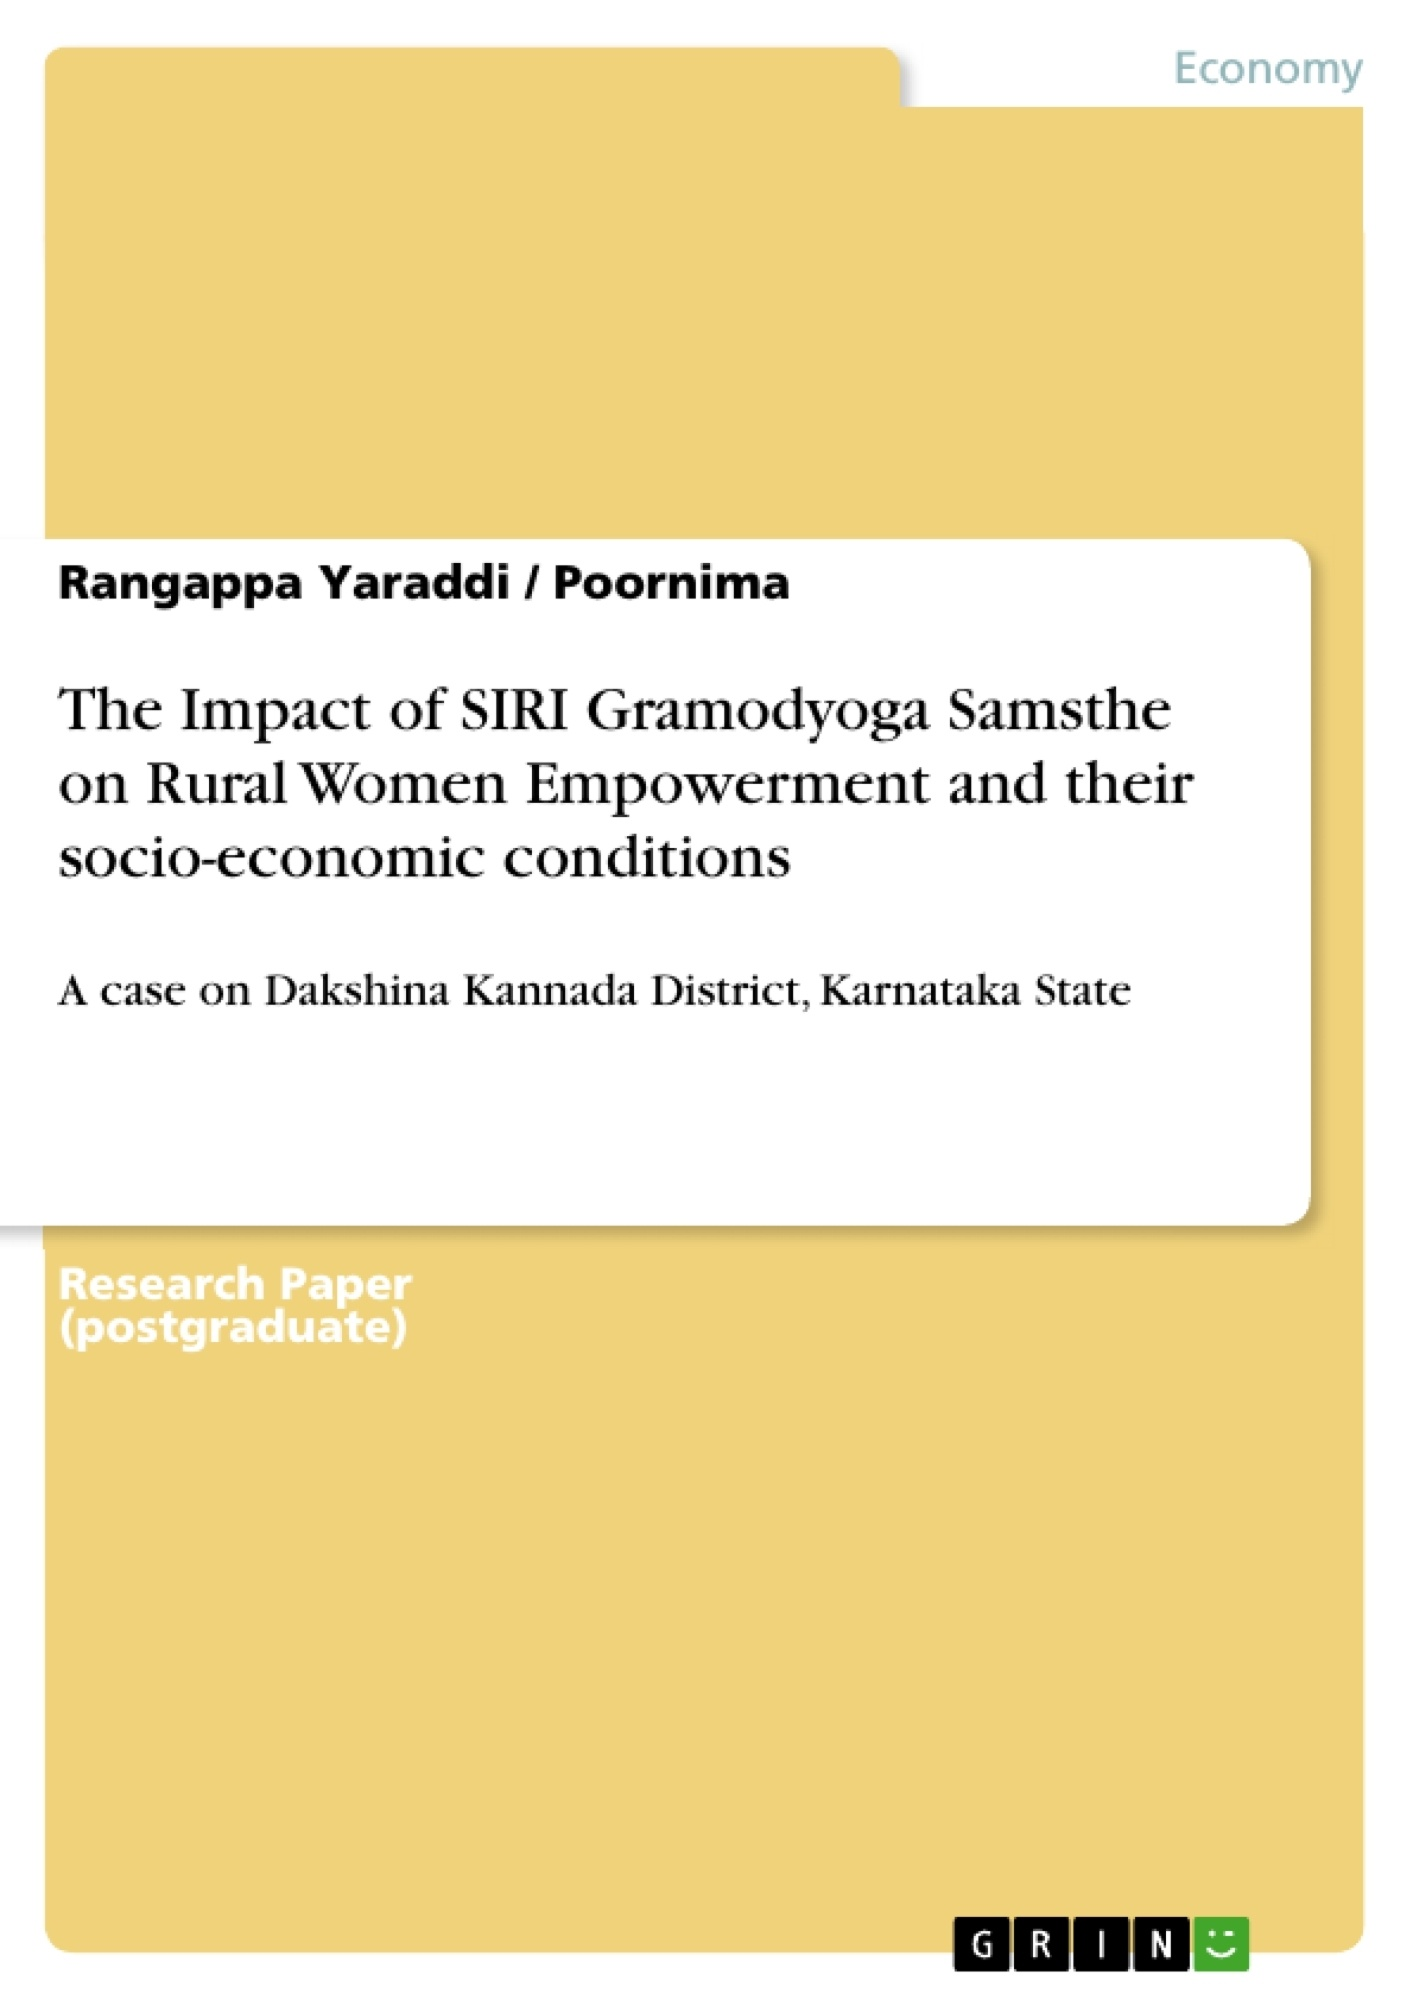 Title: The Impact of SIRI Gramodyoga Samsthe on Rural Women Empowerment and their socio-economic conditions